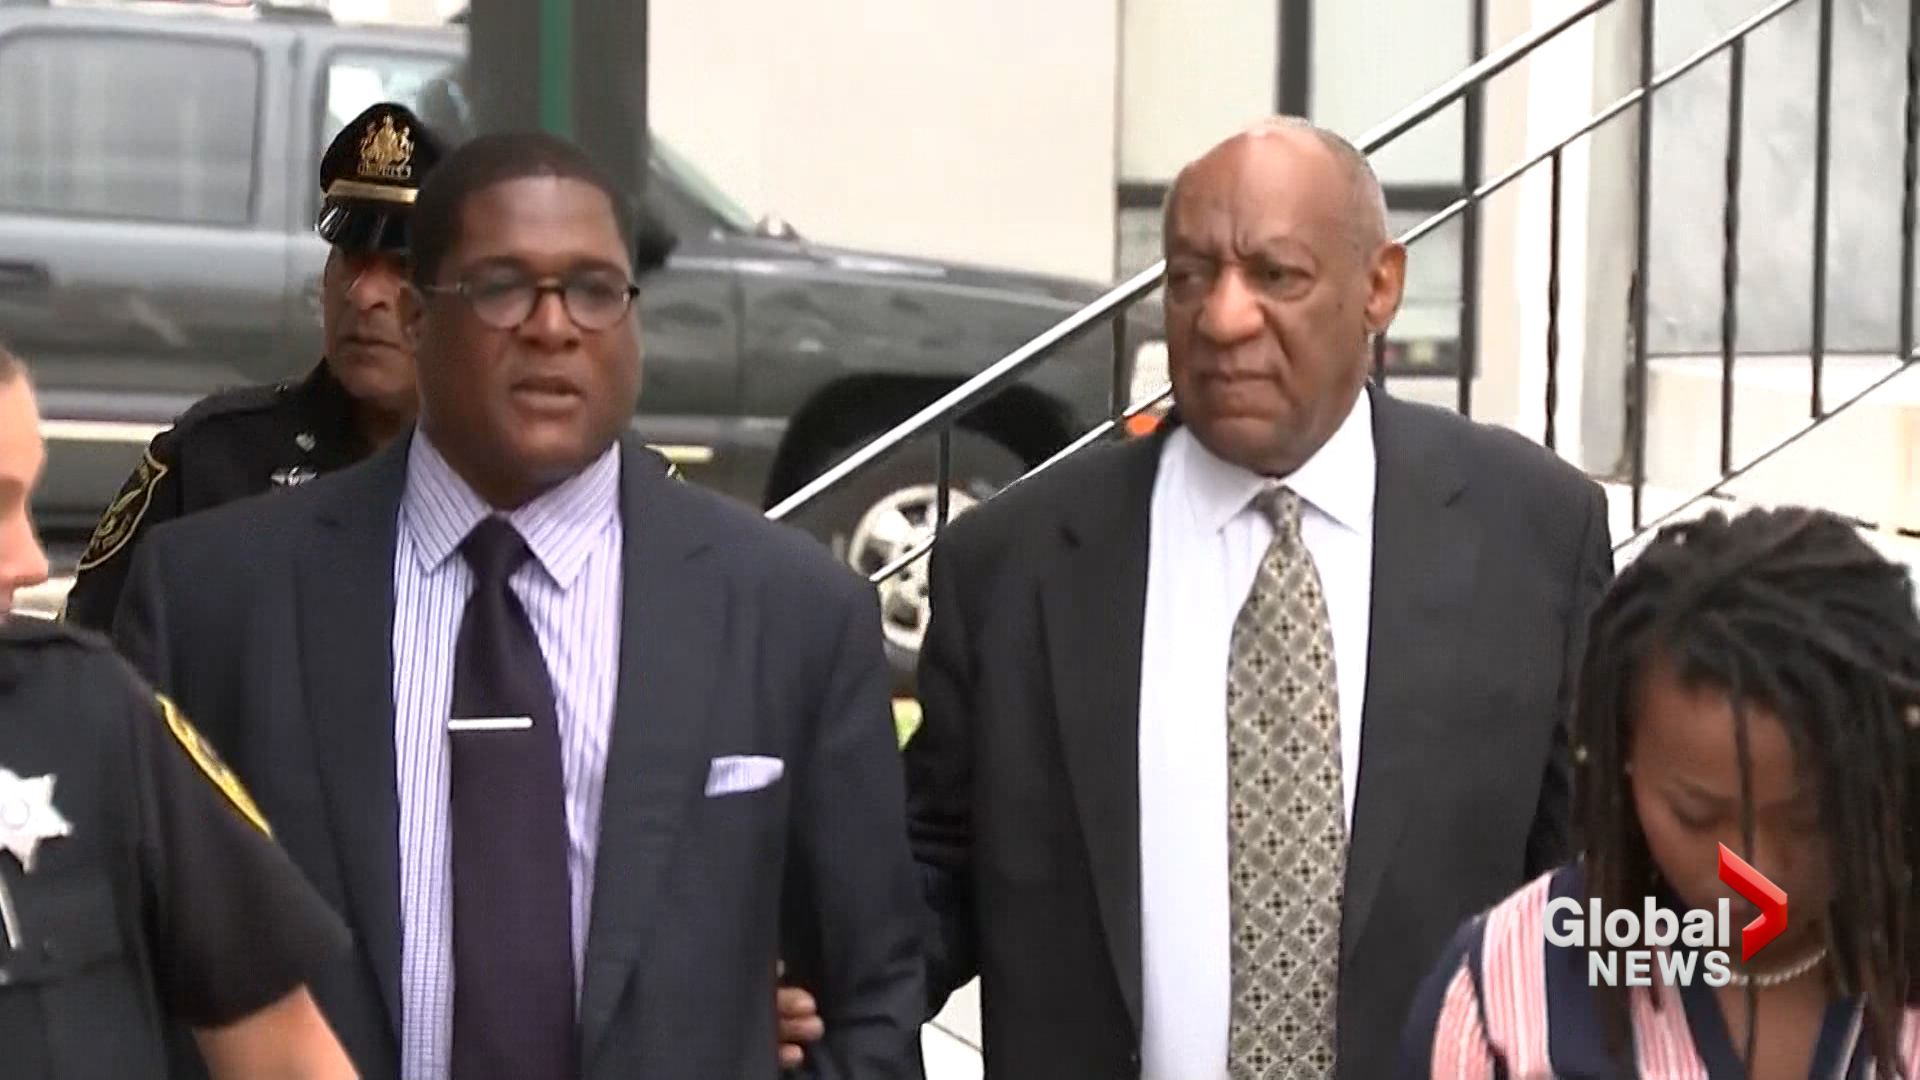 Deadlock jury in Bill Cosby trial